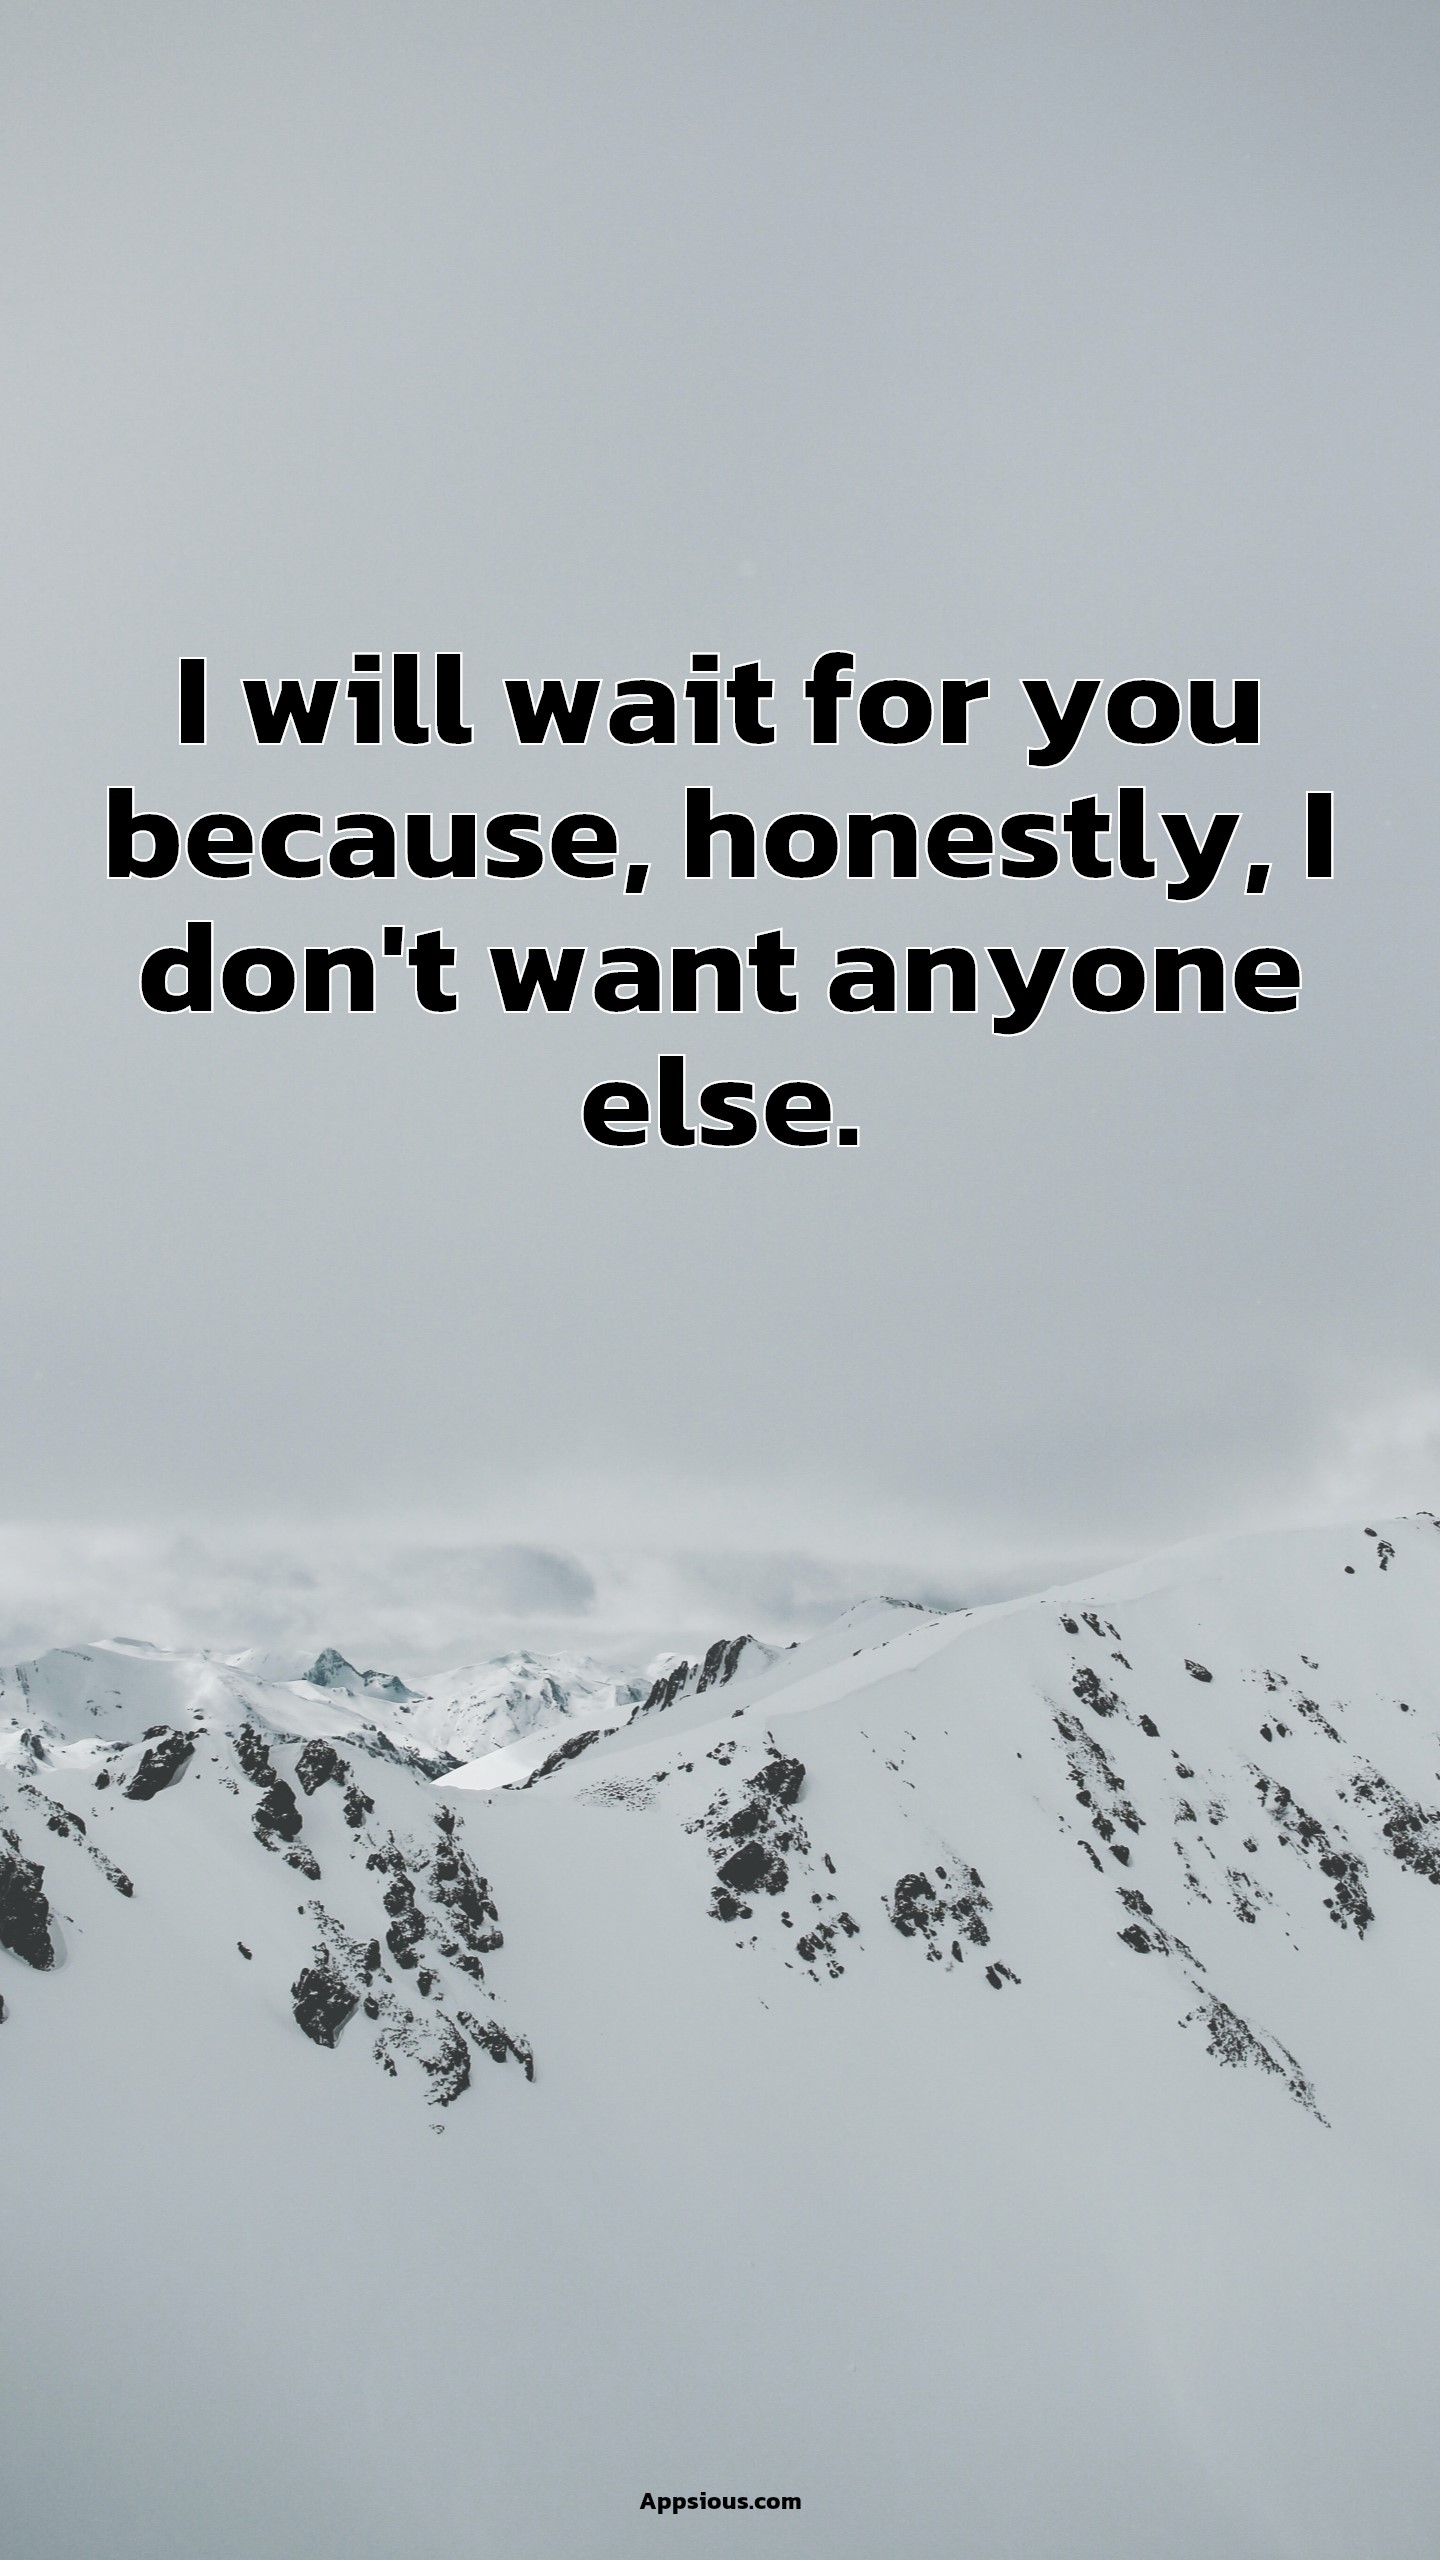 I will wait for you because, honestly, I don't want anyone else.